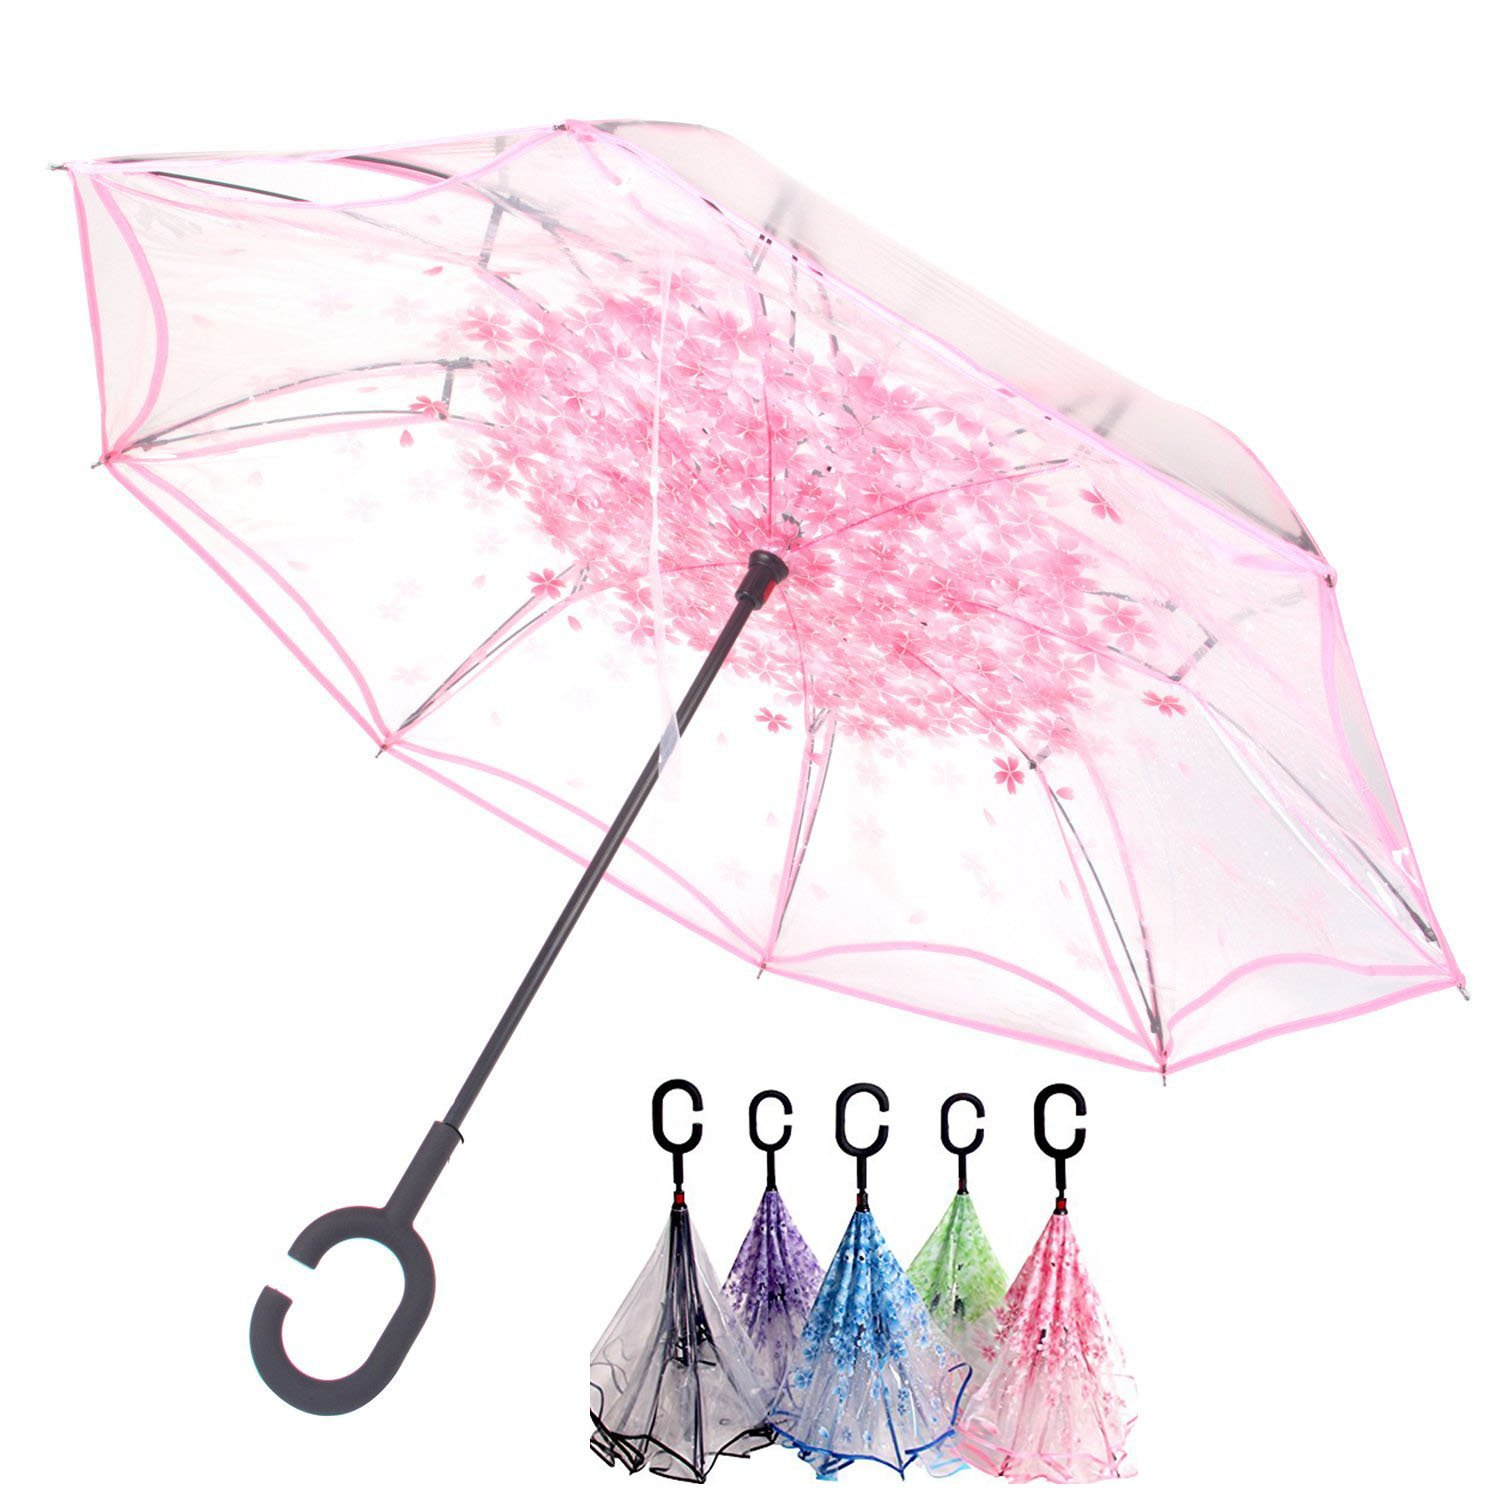 Transparent Cherry Blossom Inverted Umbrella Cars Reverse Umbrella, Windproof UV Protection Big Straight Umbrella for Car Rain Outdoor With C-Shaped Handle Vchoco